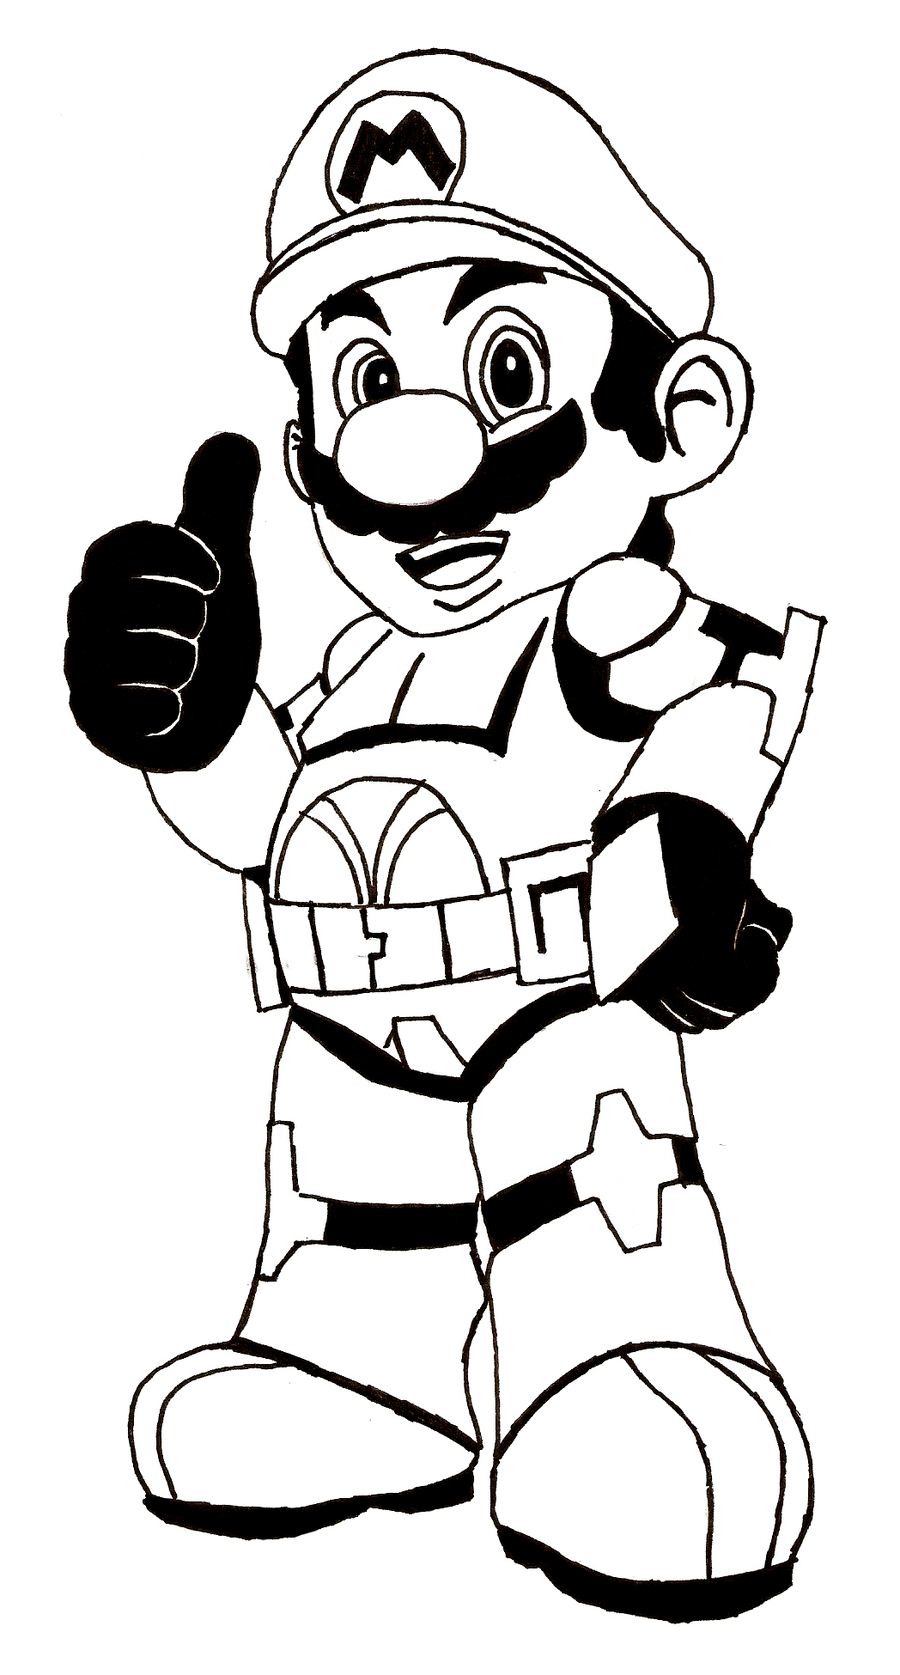 Free Printable Mario Coloring Pages For Kids Mario Coloring Pages Super Mario Coloring Pages Cartoon Coloring Pages